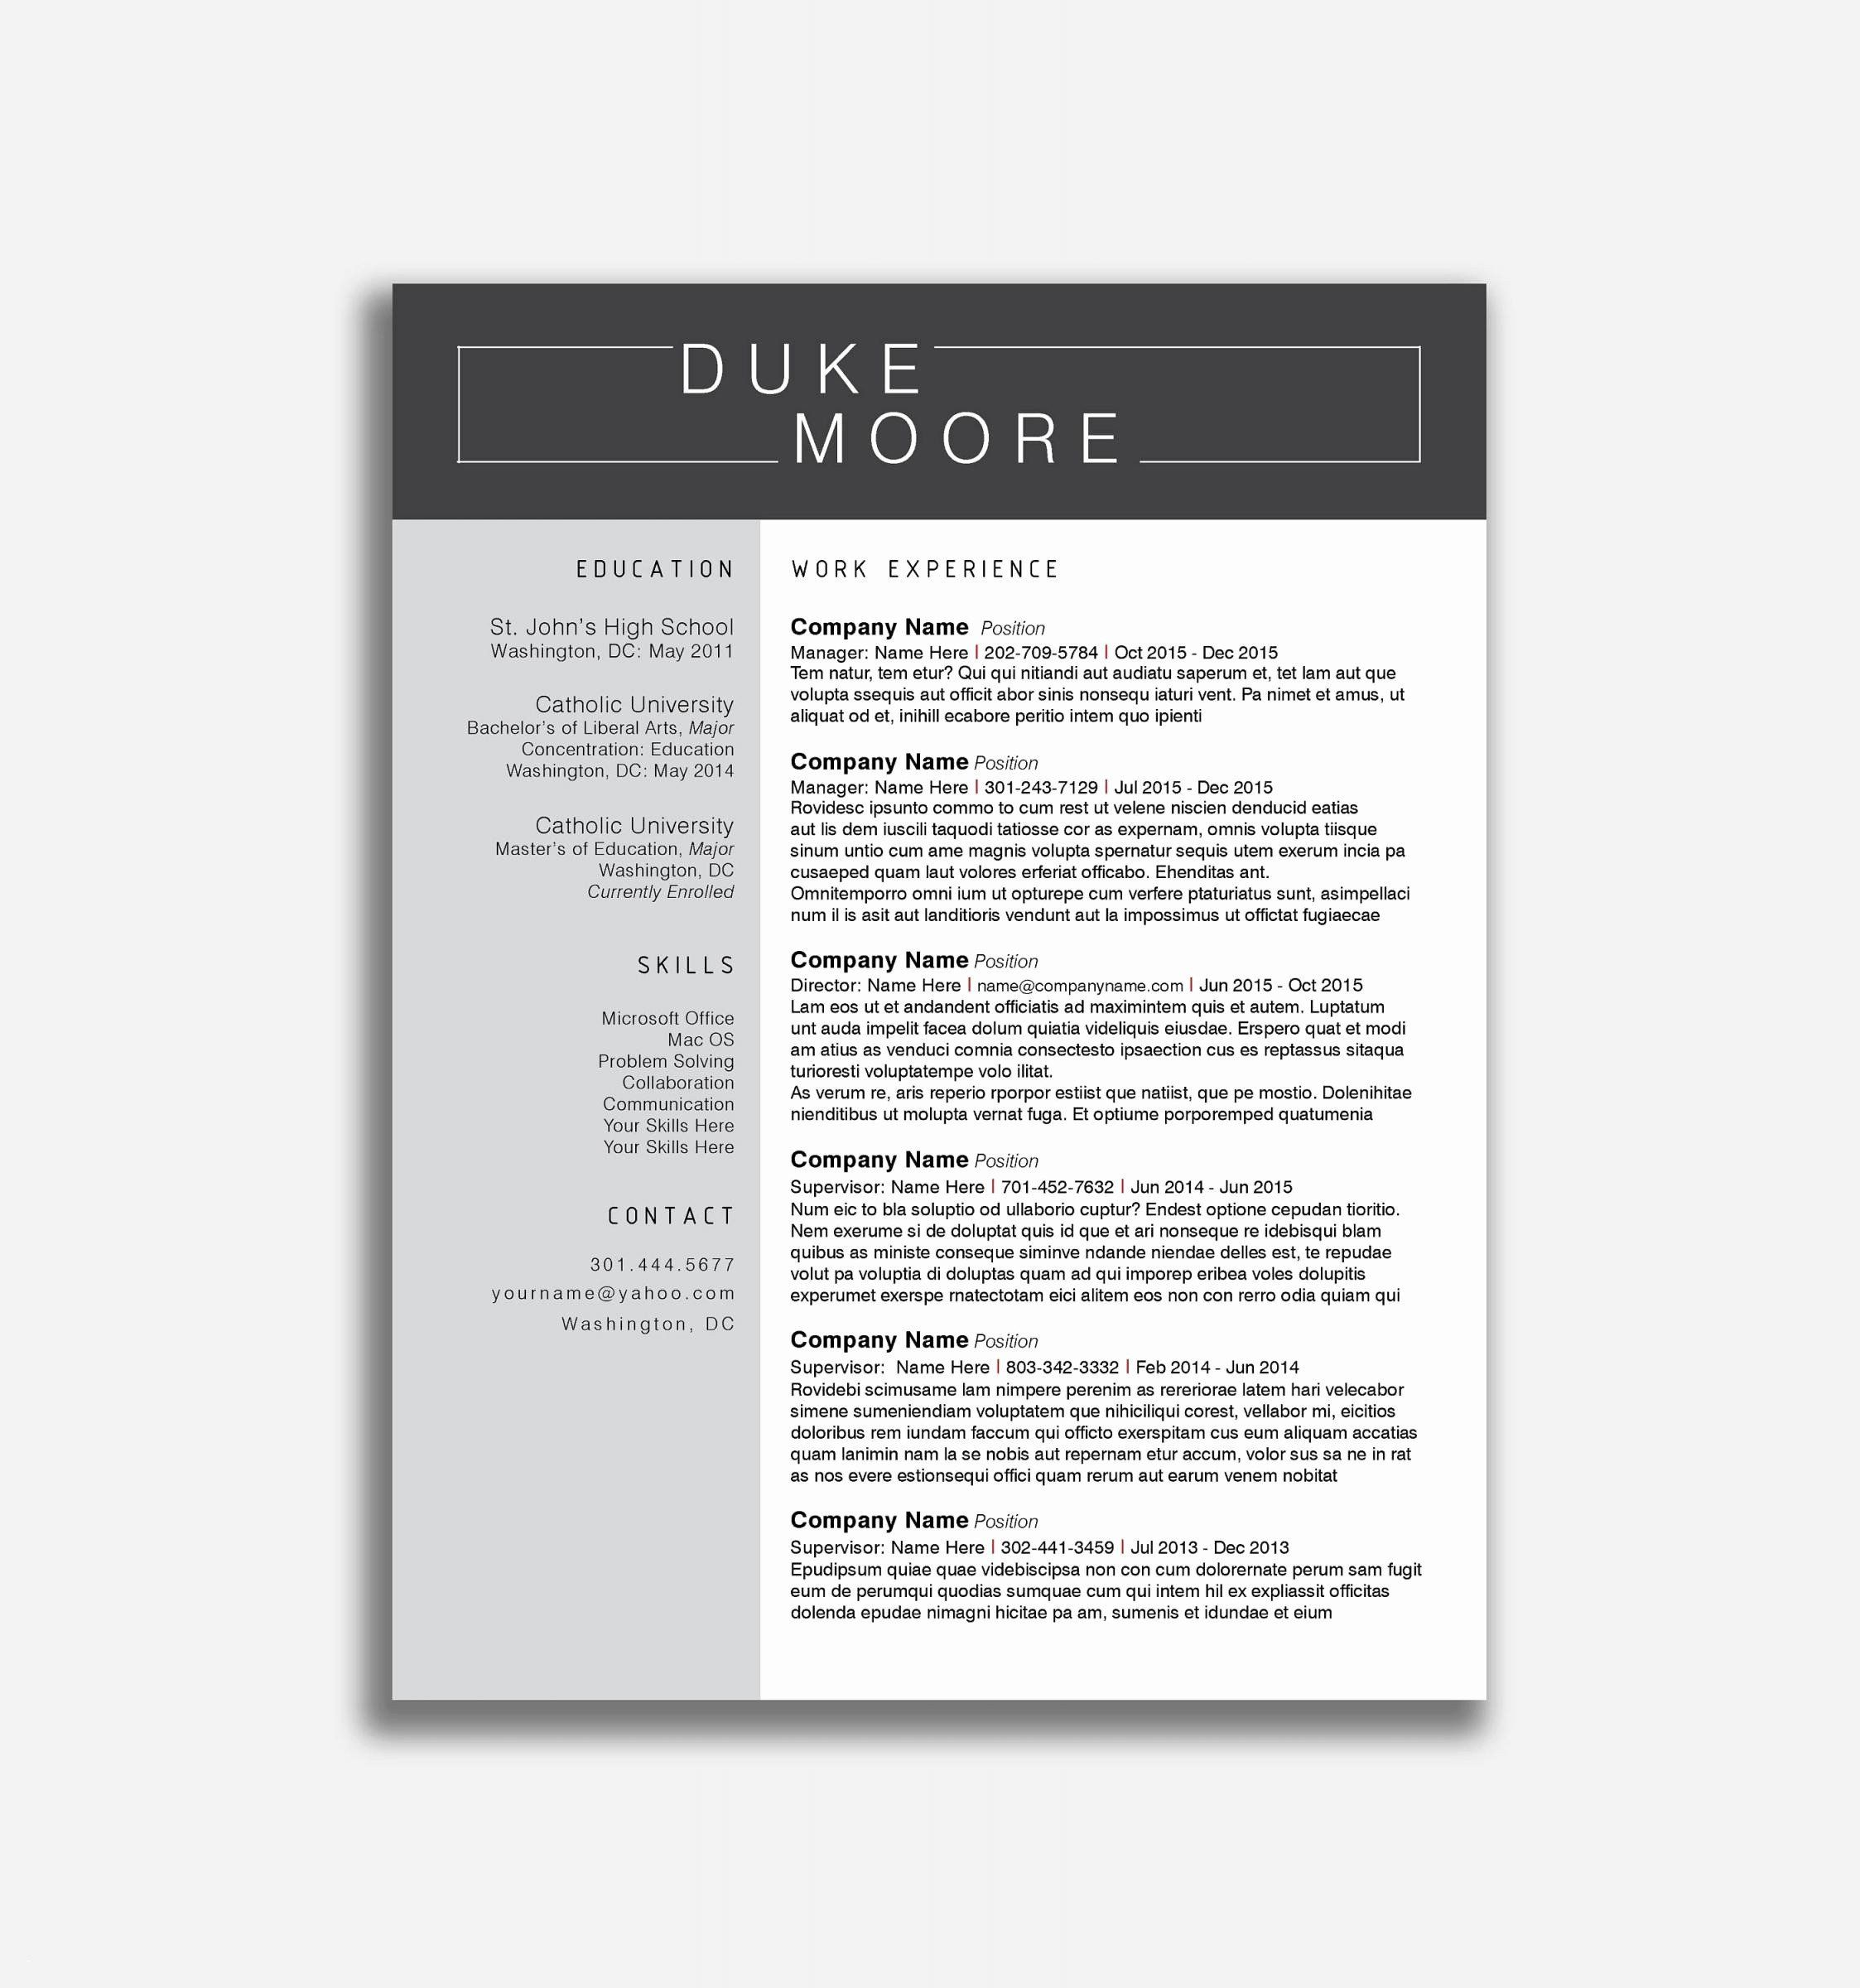 Free Resume Builder Reddit Awesome Free Background Music Mallerstang In 2020 Resume Template Free Project Manager Resume Resume Template Examples